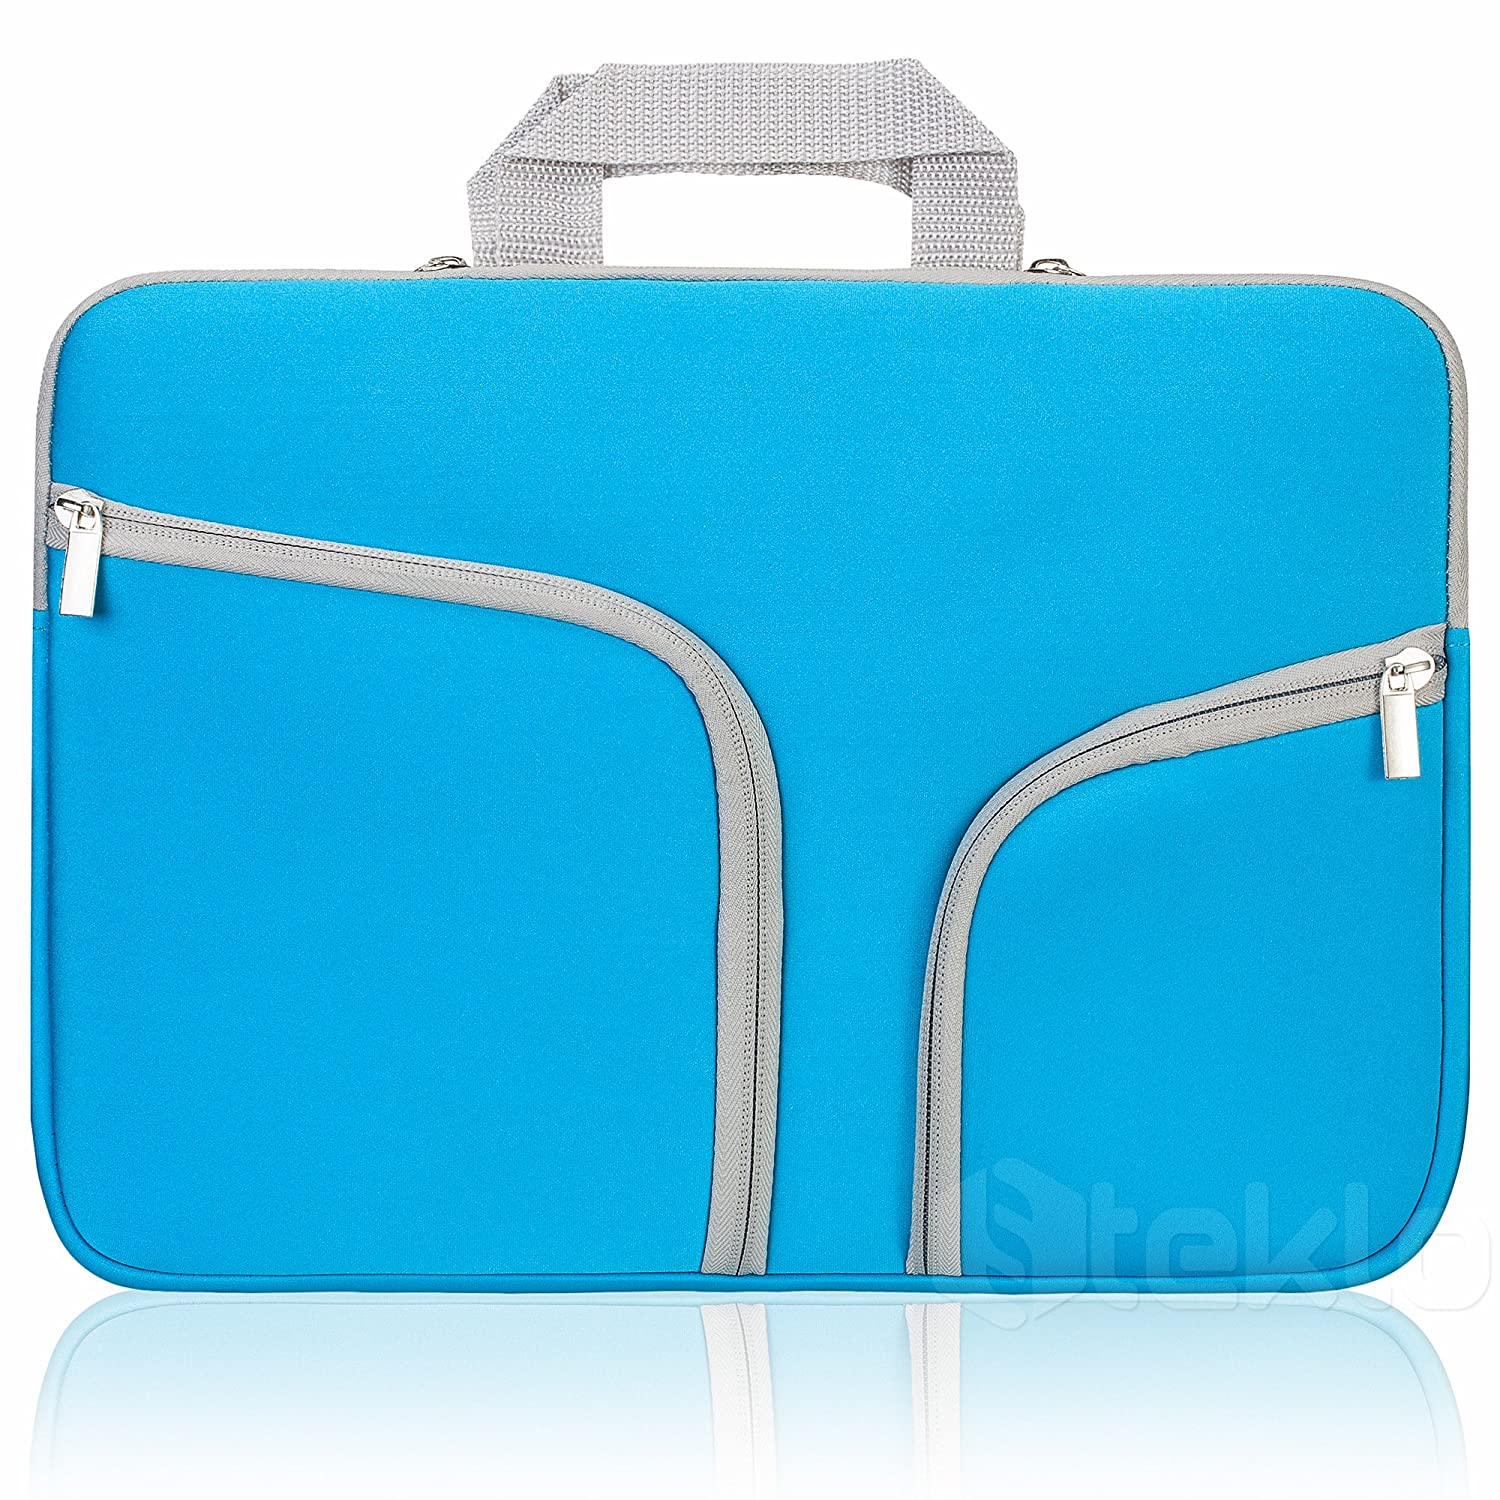 Amazon.com: Funda de neopreno para MacBook Pro Retina y Air ...